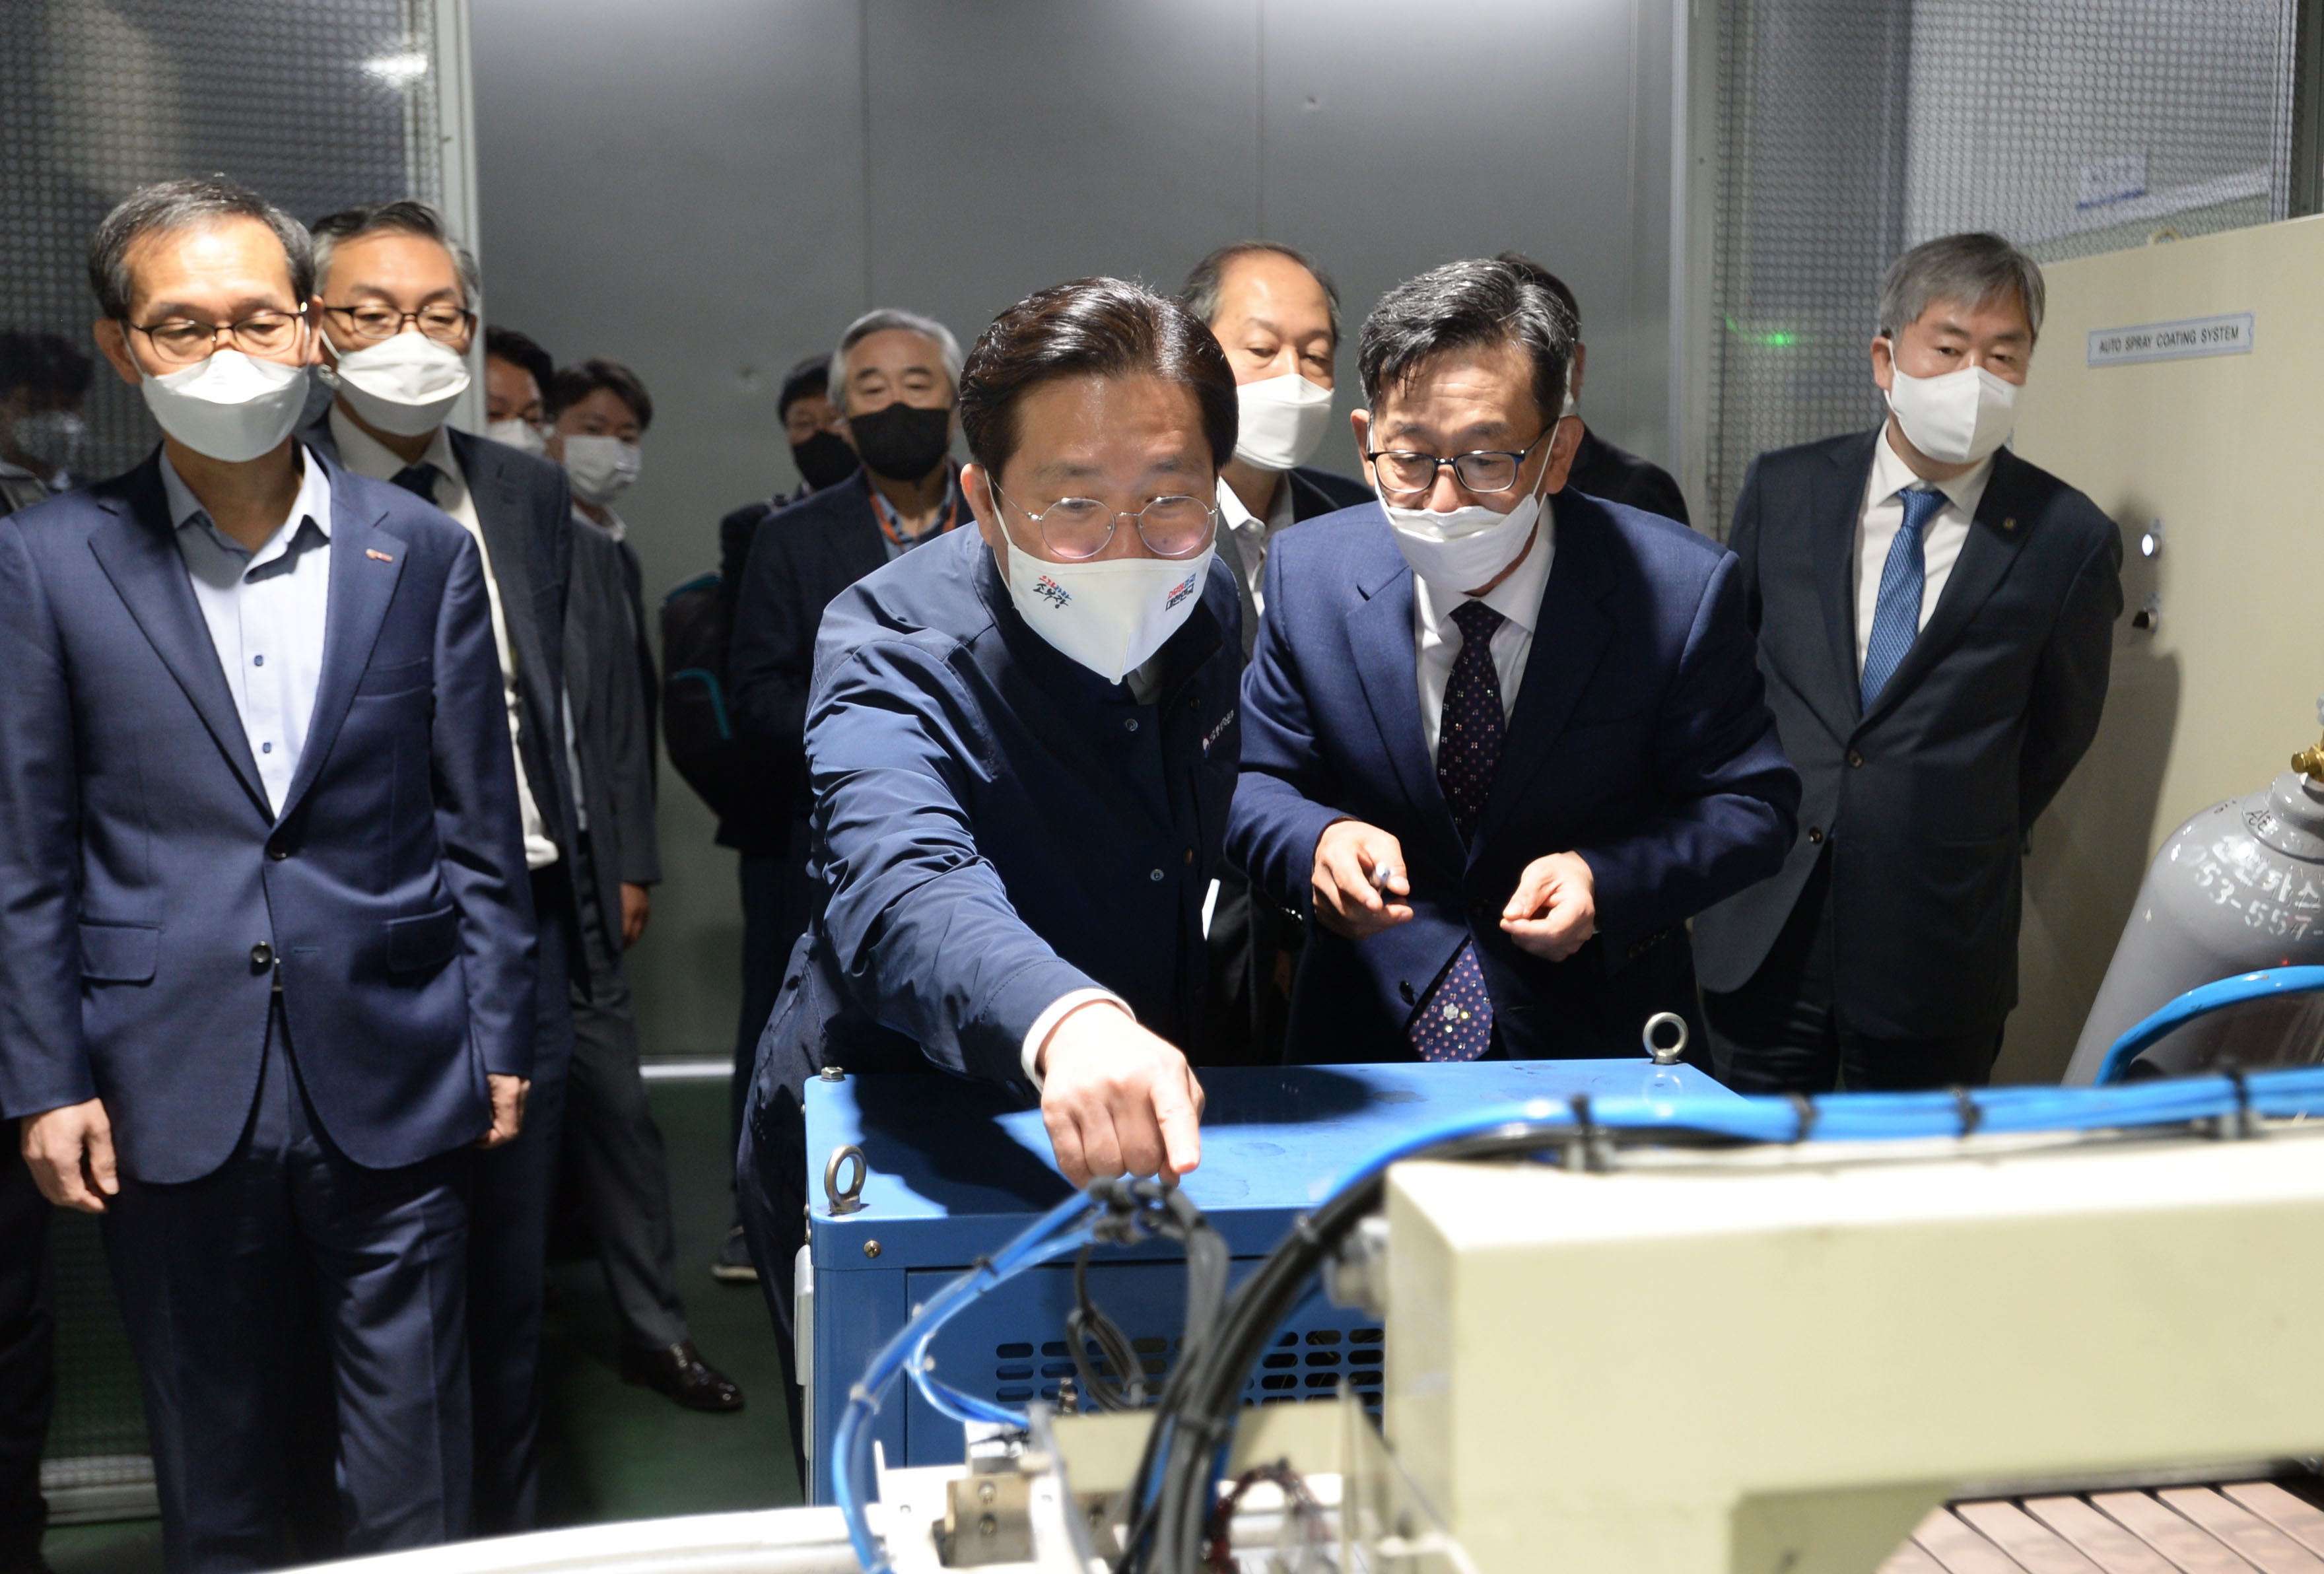 Minister Sung visits rare earth permanent magnet manufacturer in Daegu